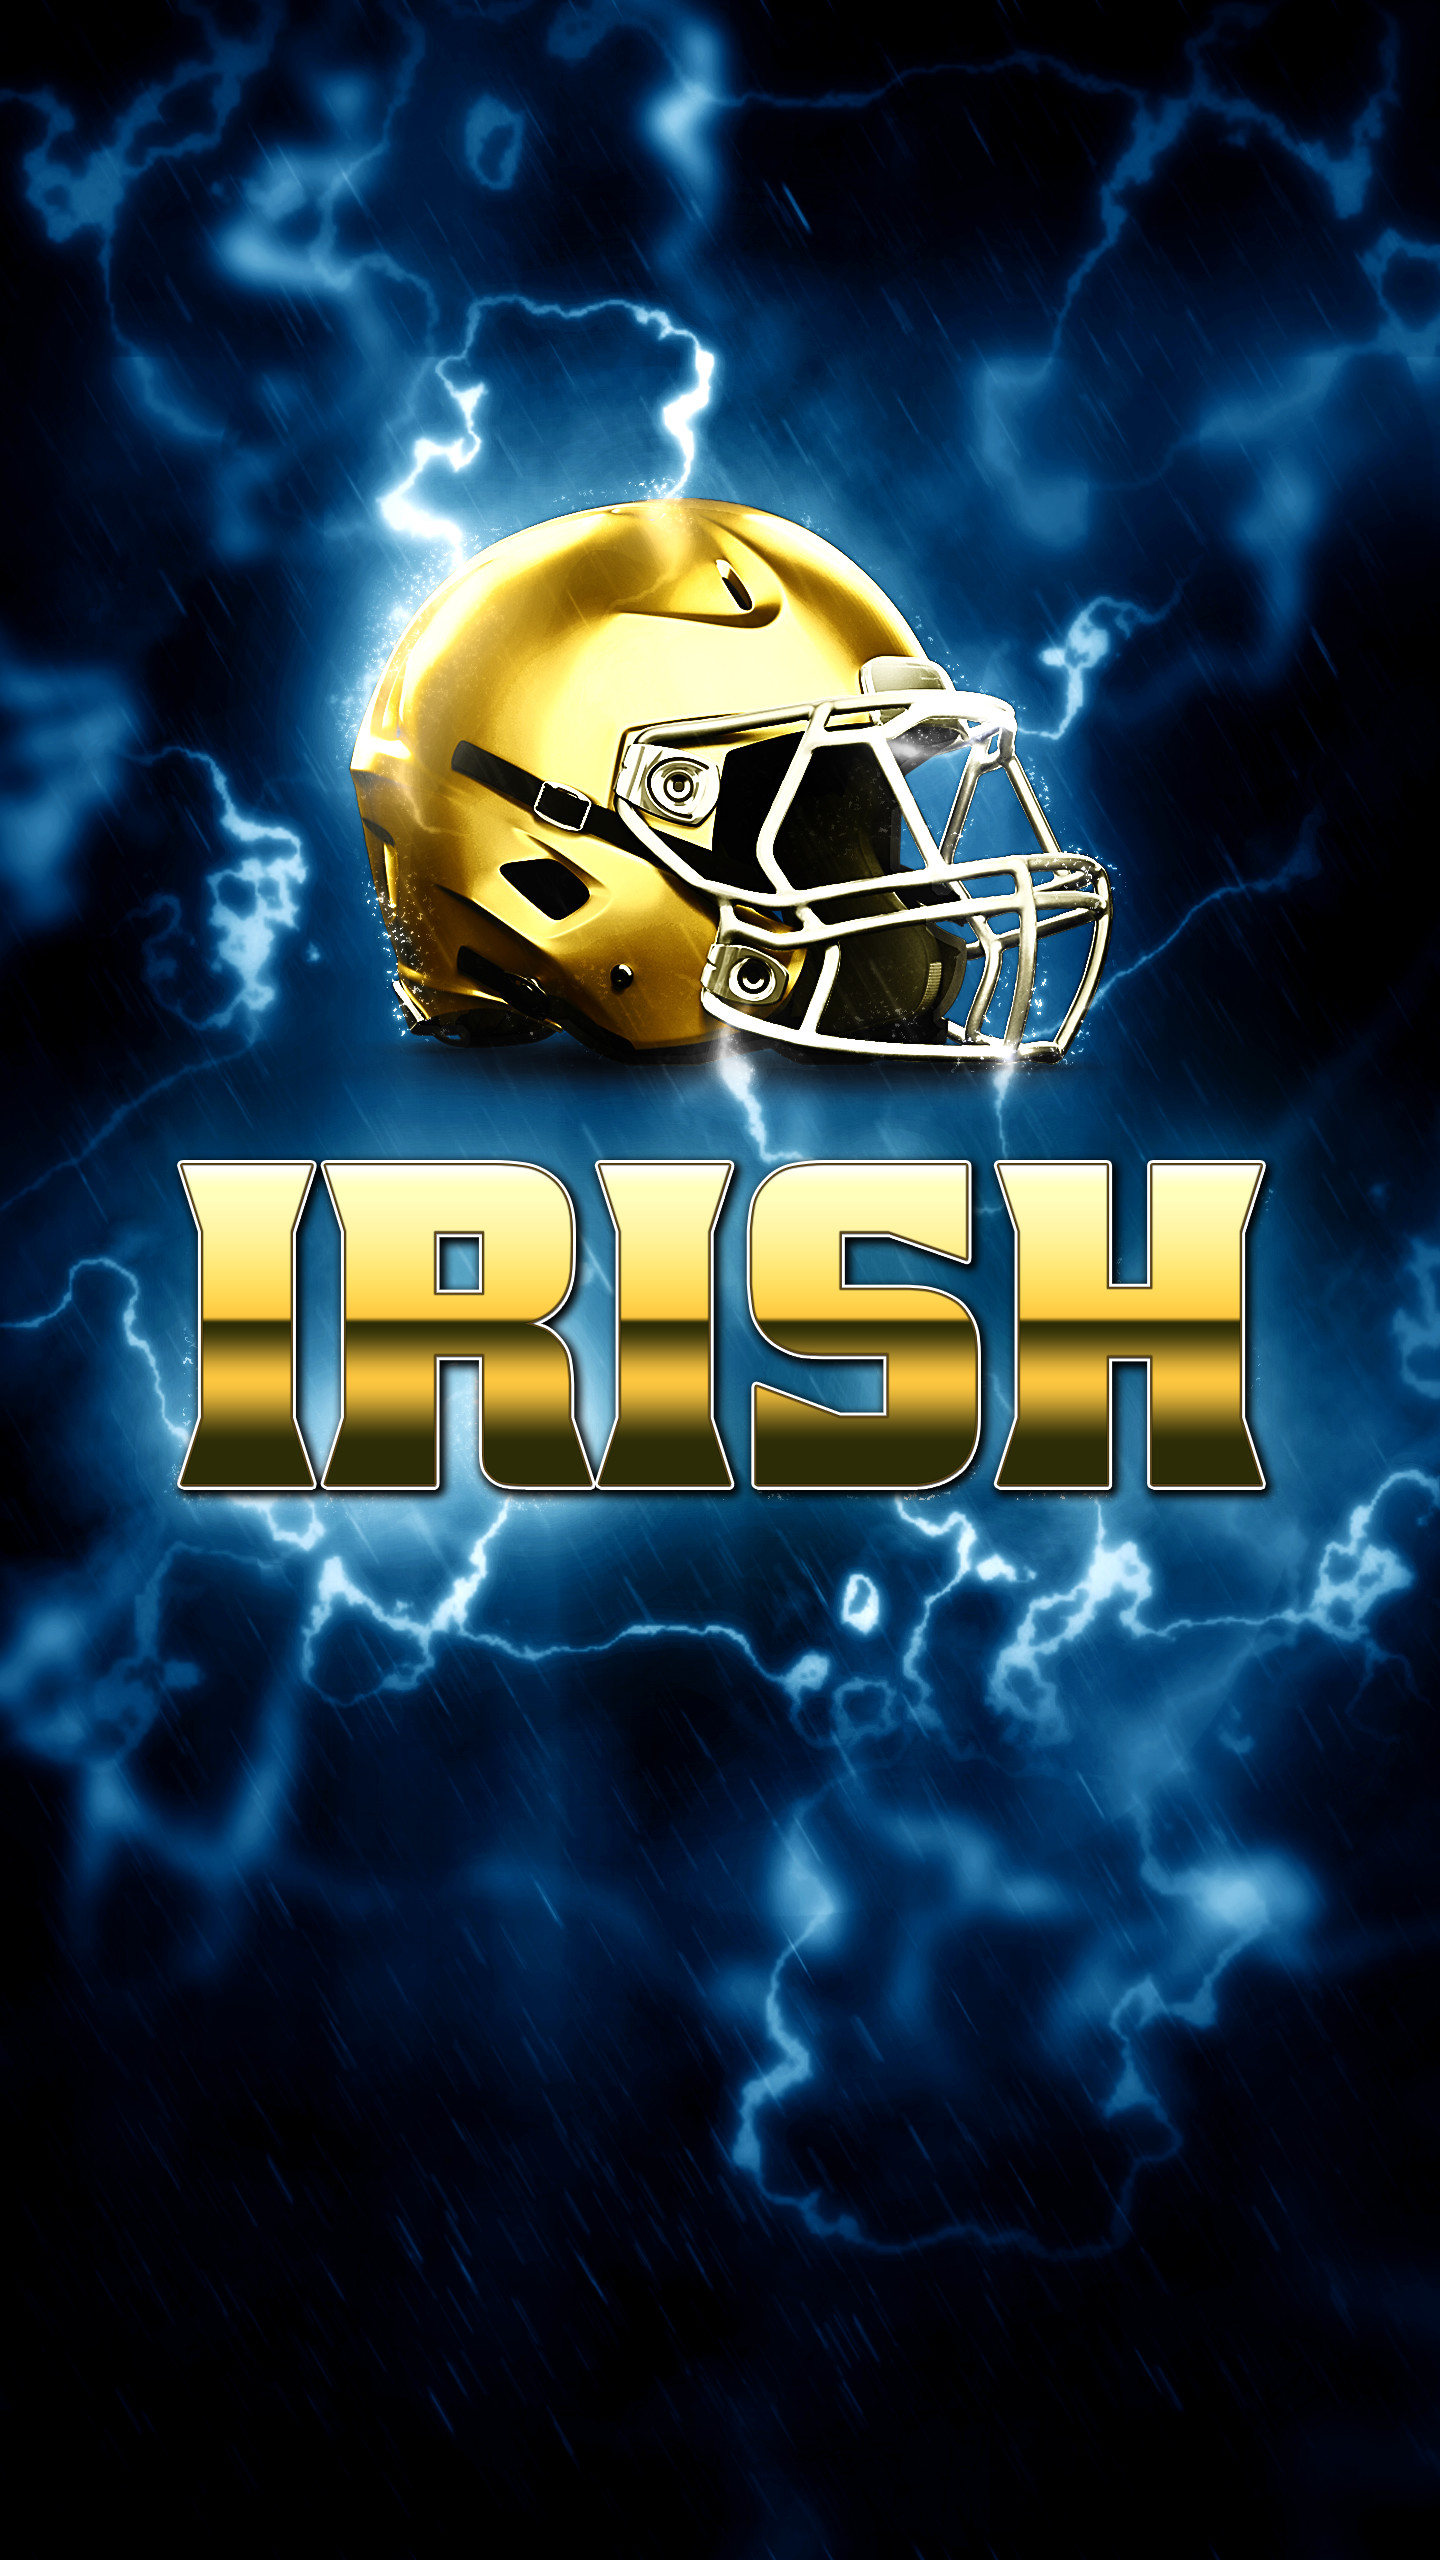 Notre Dame Wallpaper iPhone/Android Screen Resolution (1440 x 2560)